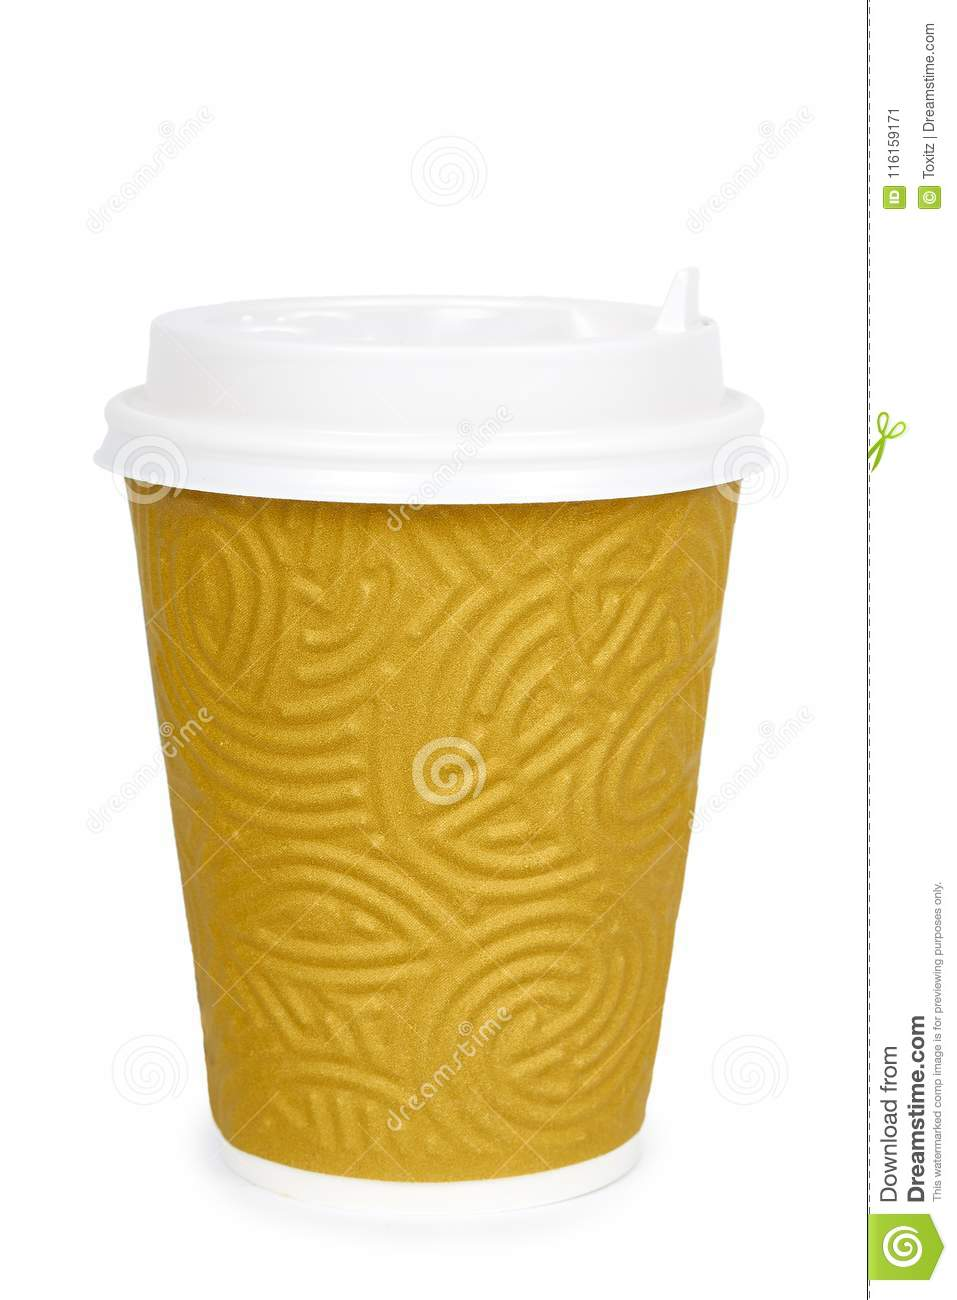 Take out coffee in thermo cup. Isolated on a white background. Disposable container, hot beverage